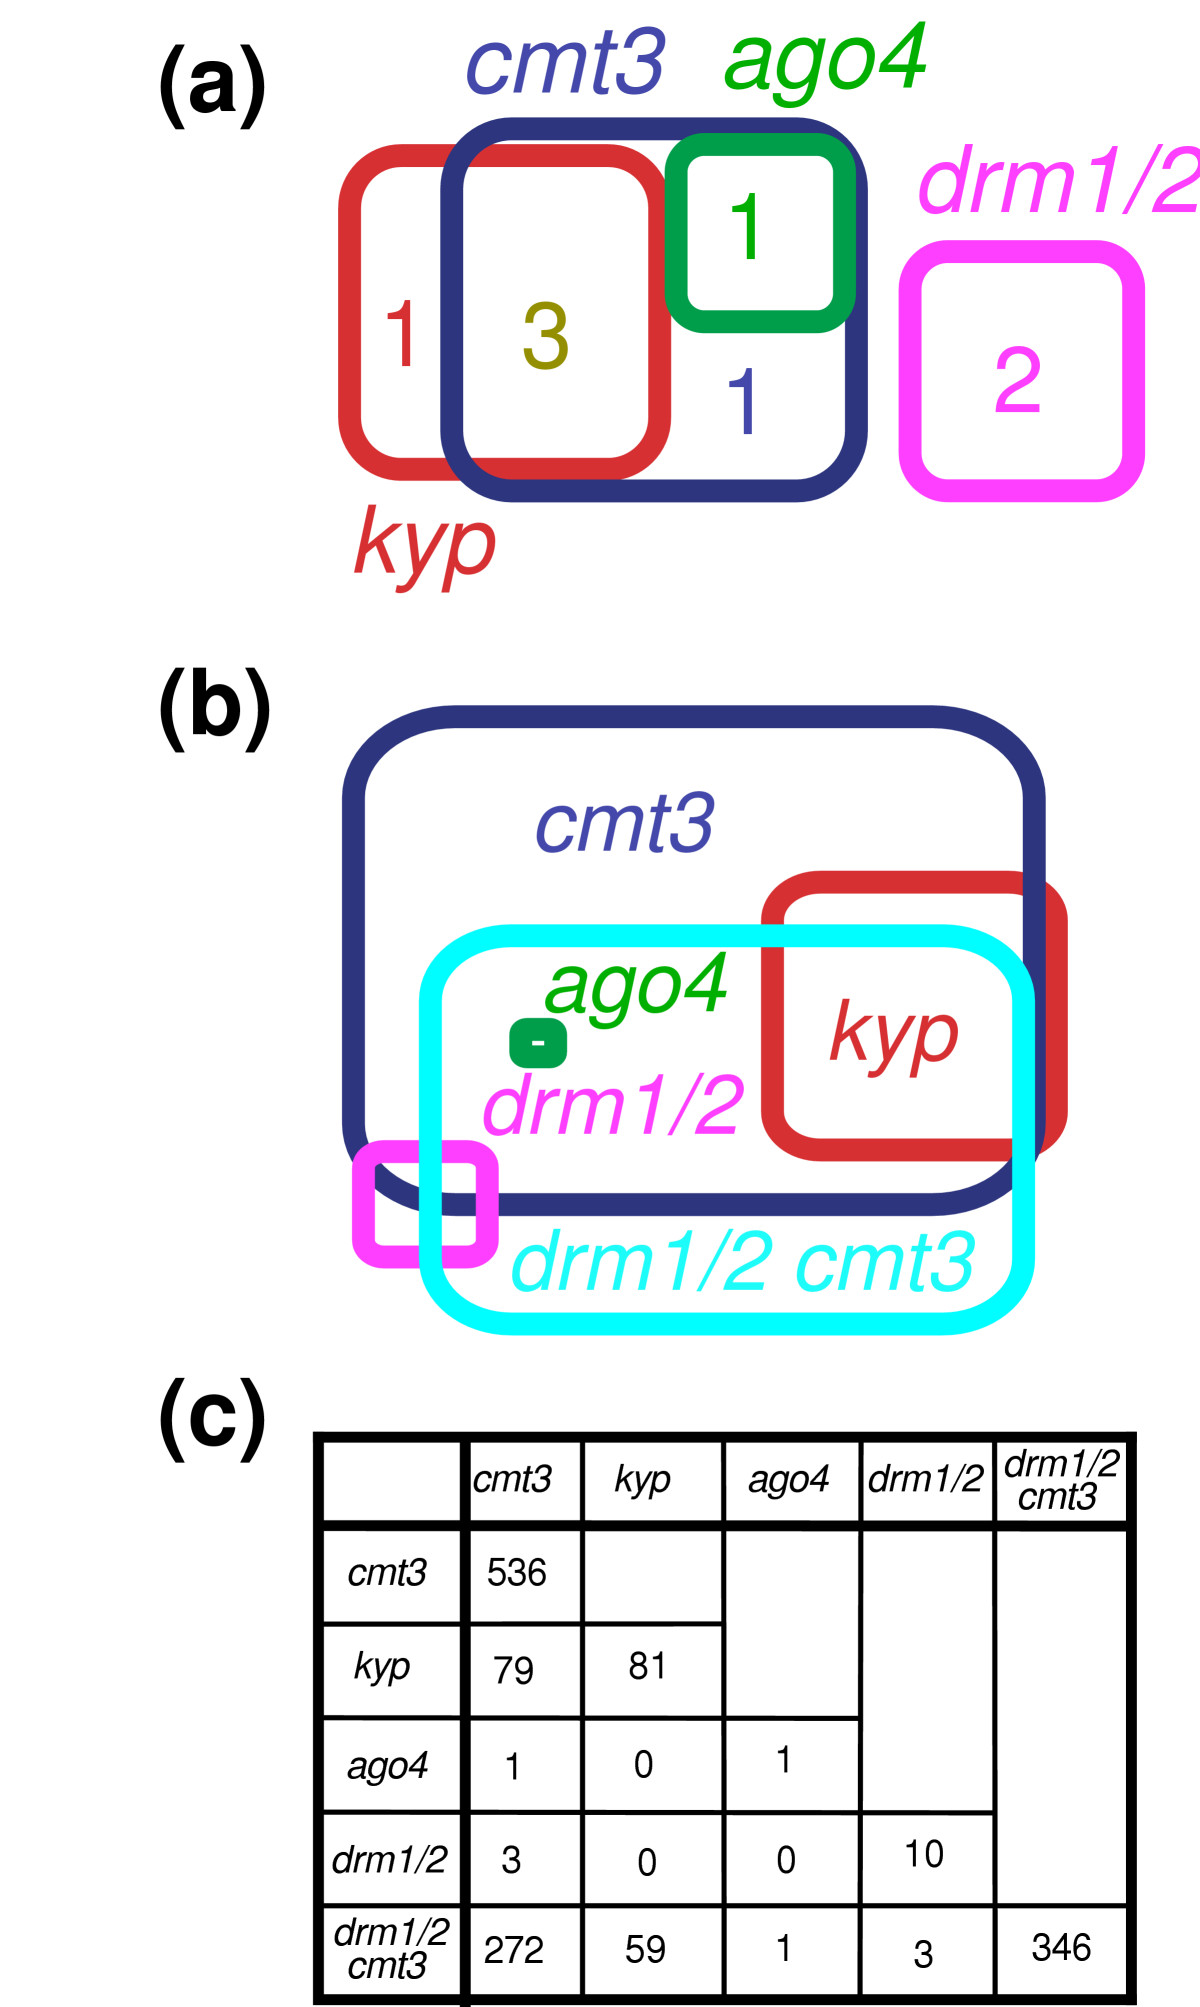 https://static-content.springer.com/image/art%3A10.1186%2Fgb-2005-6-11-r90/MediaObjects/13059_2005_Article_1125_Fig2_HTML.jpg